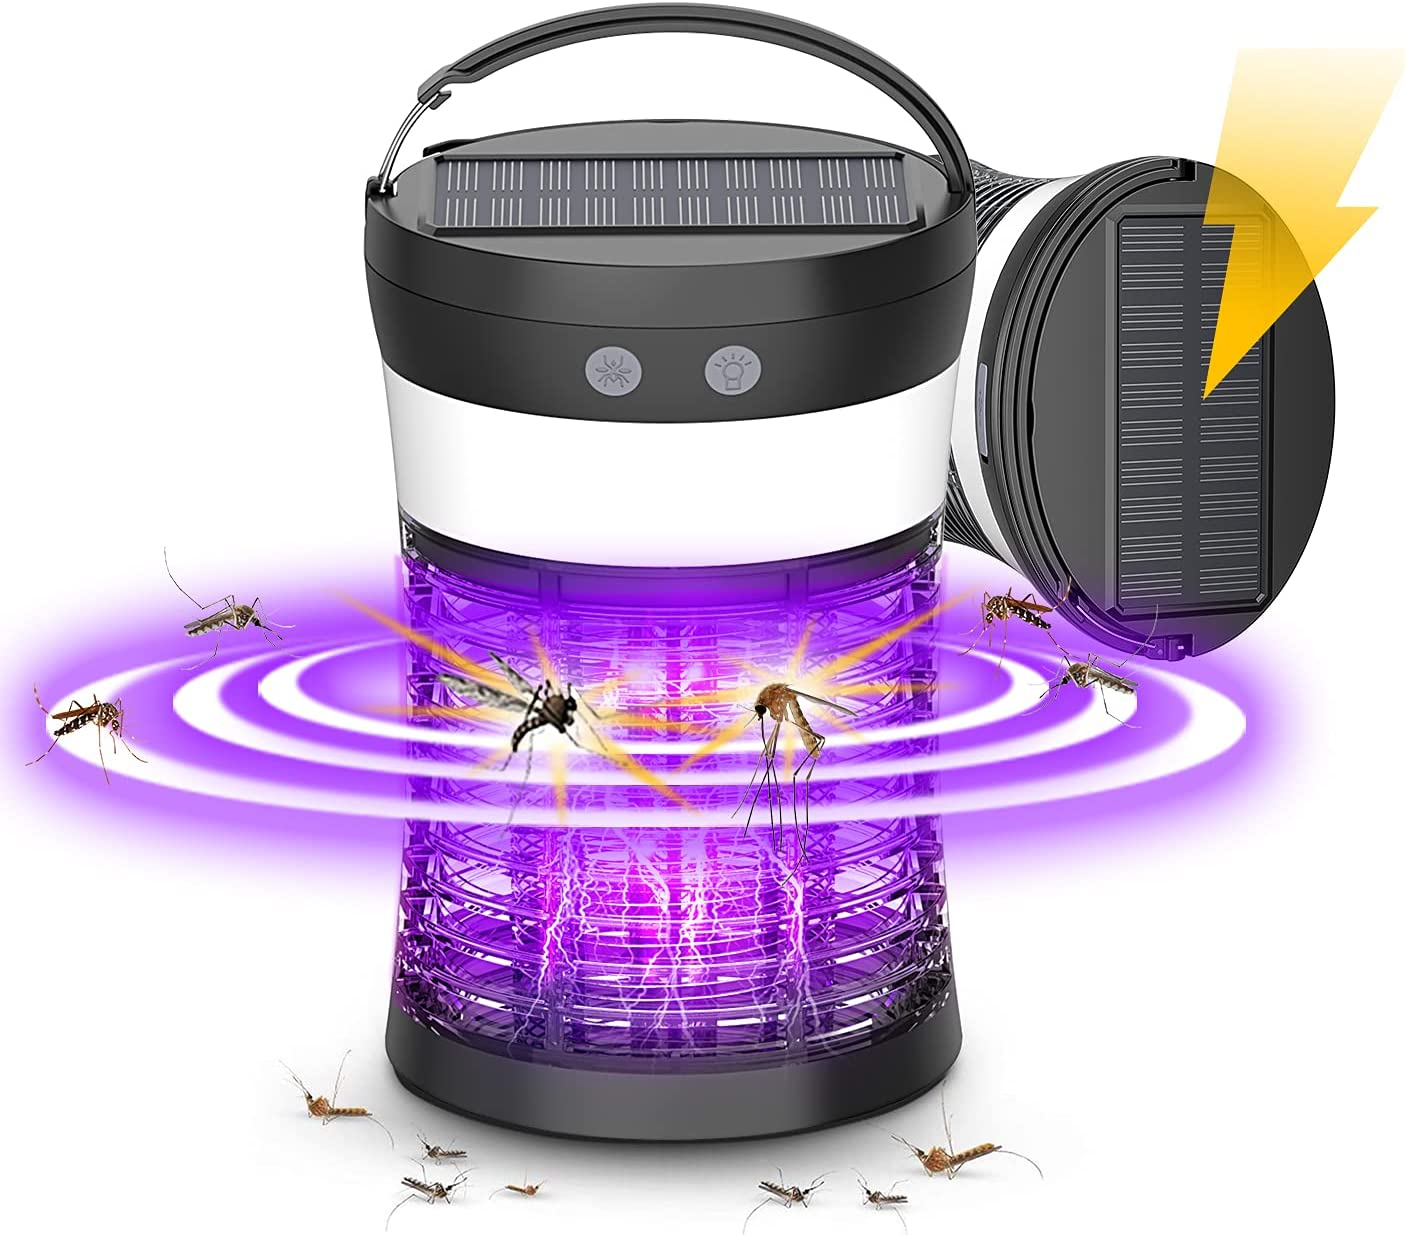 Solar Powered Bug Zapper 3-in-1 Rechargeable Mosquito Killer Camping Lantern with SOS Emergency Light, Waterproof Electric Mosquito Zappers Insect Fly Pest Attractant Trap for Indoor Outdoor